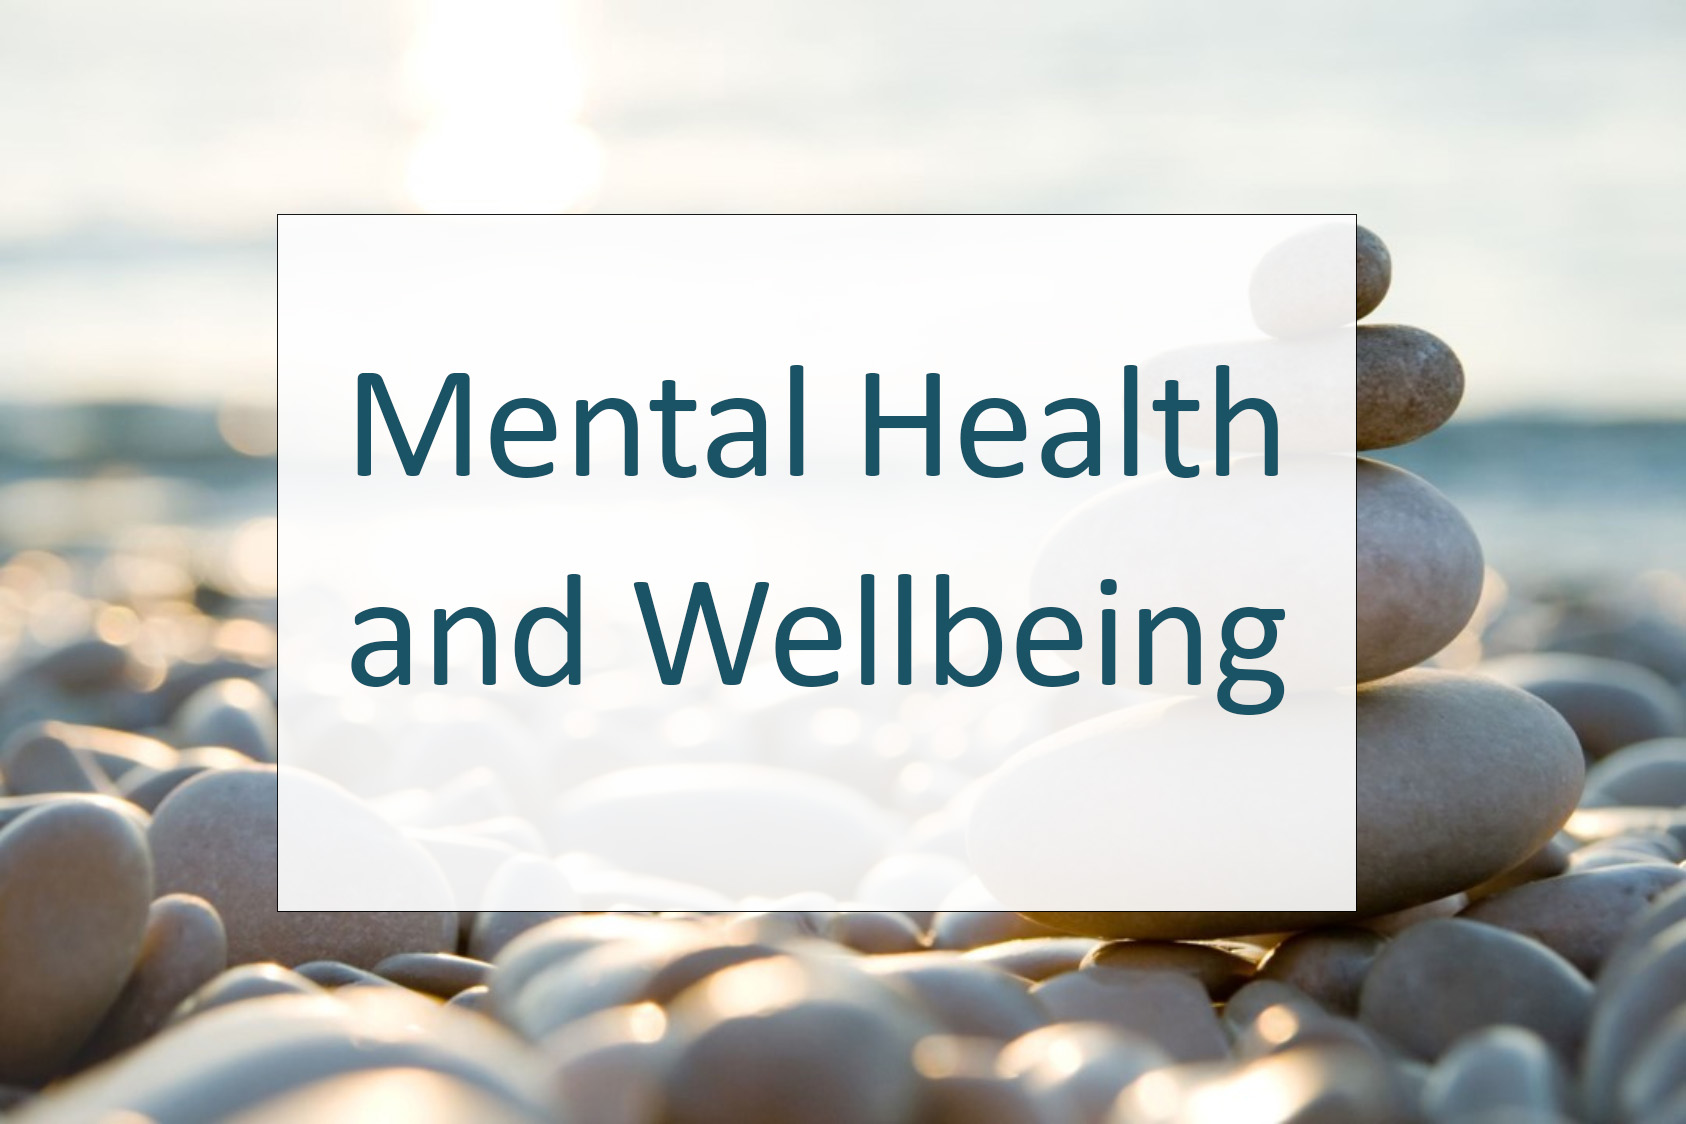 Mental Health and Wellbeing section